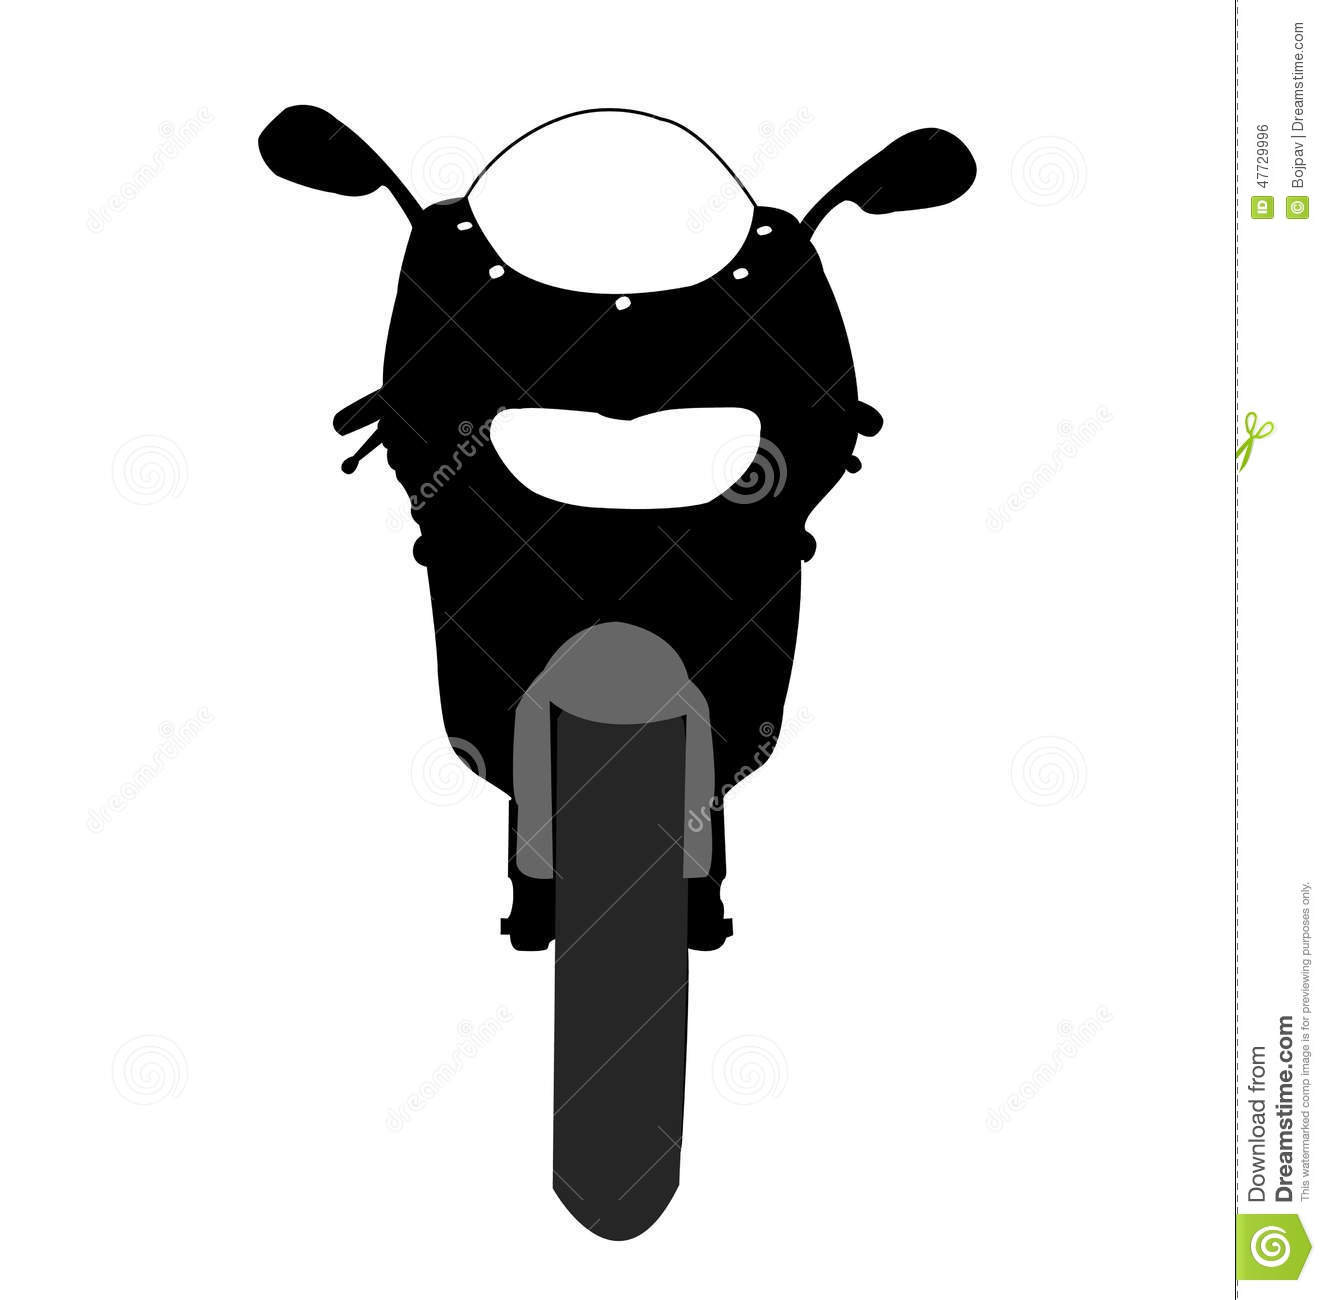 Motorcycle Front View Vector Stock Vector - Image: 47729996